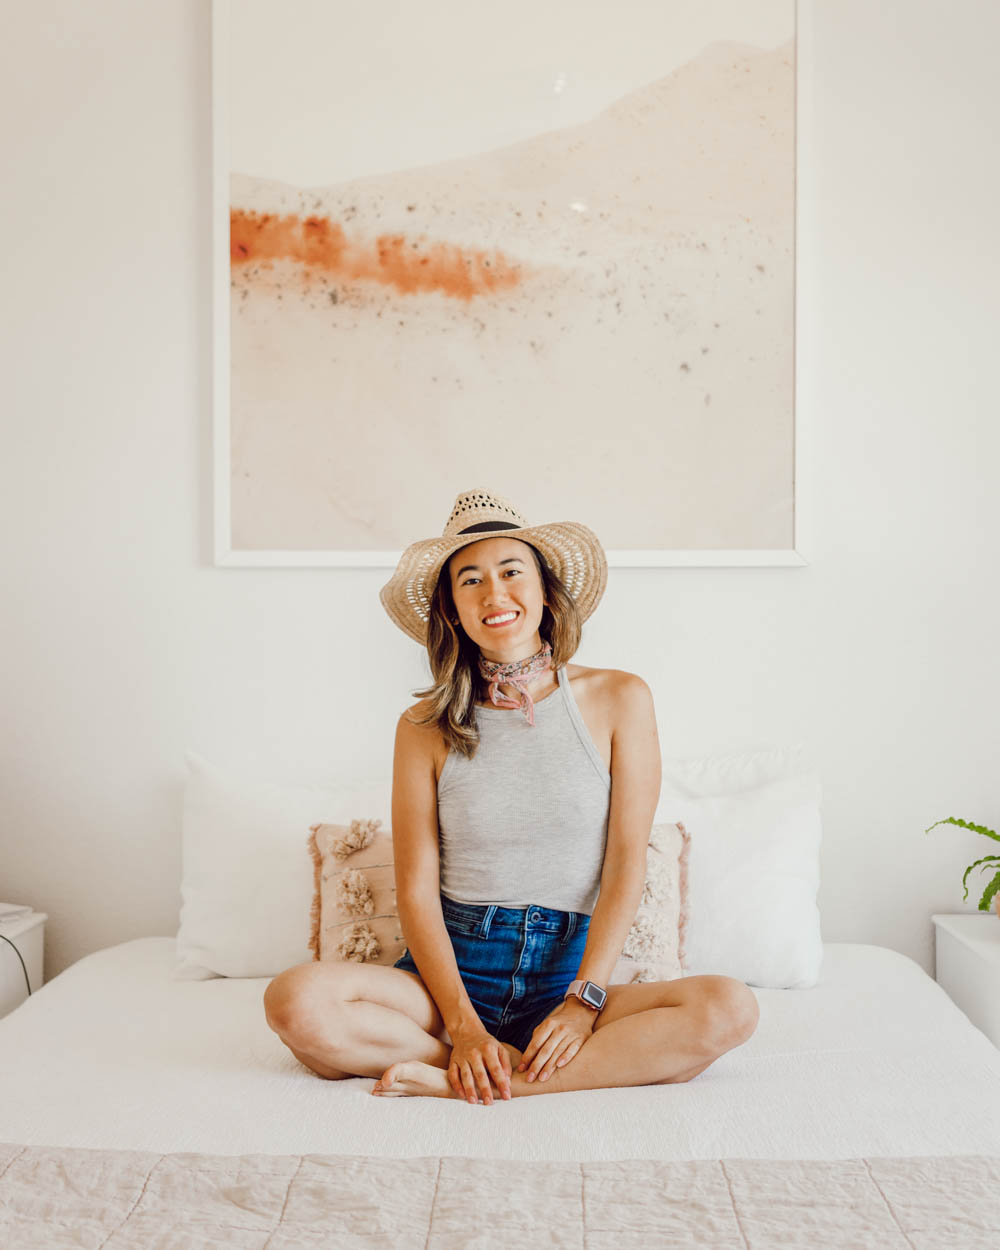 How to keep your memories as a minimalist (without the clutter)   When you're transitioning to minimalism, one of the biggest challenges can be parting with sentimental items that hold special memories. If you're having this struggle, you need to read this post! In it, I share how I've learned to balance preserving my memories with my minimalist lifestyle. It can be done!   Om & the City Blog #omandthecity #minimalism #minimalist #declutter #personaldevelopment #minimalismtips